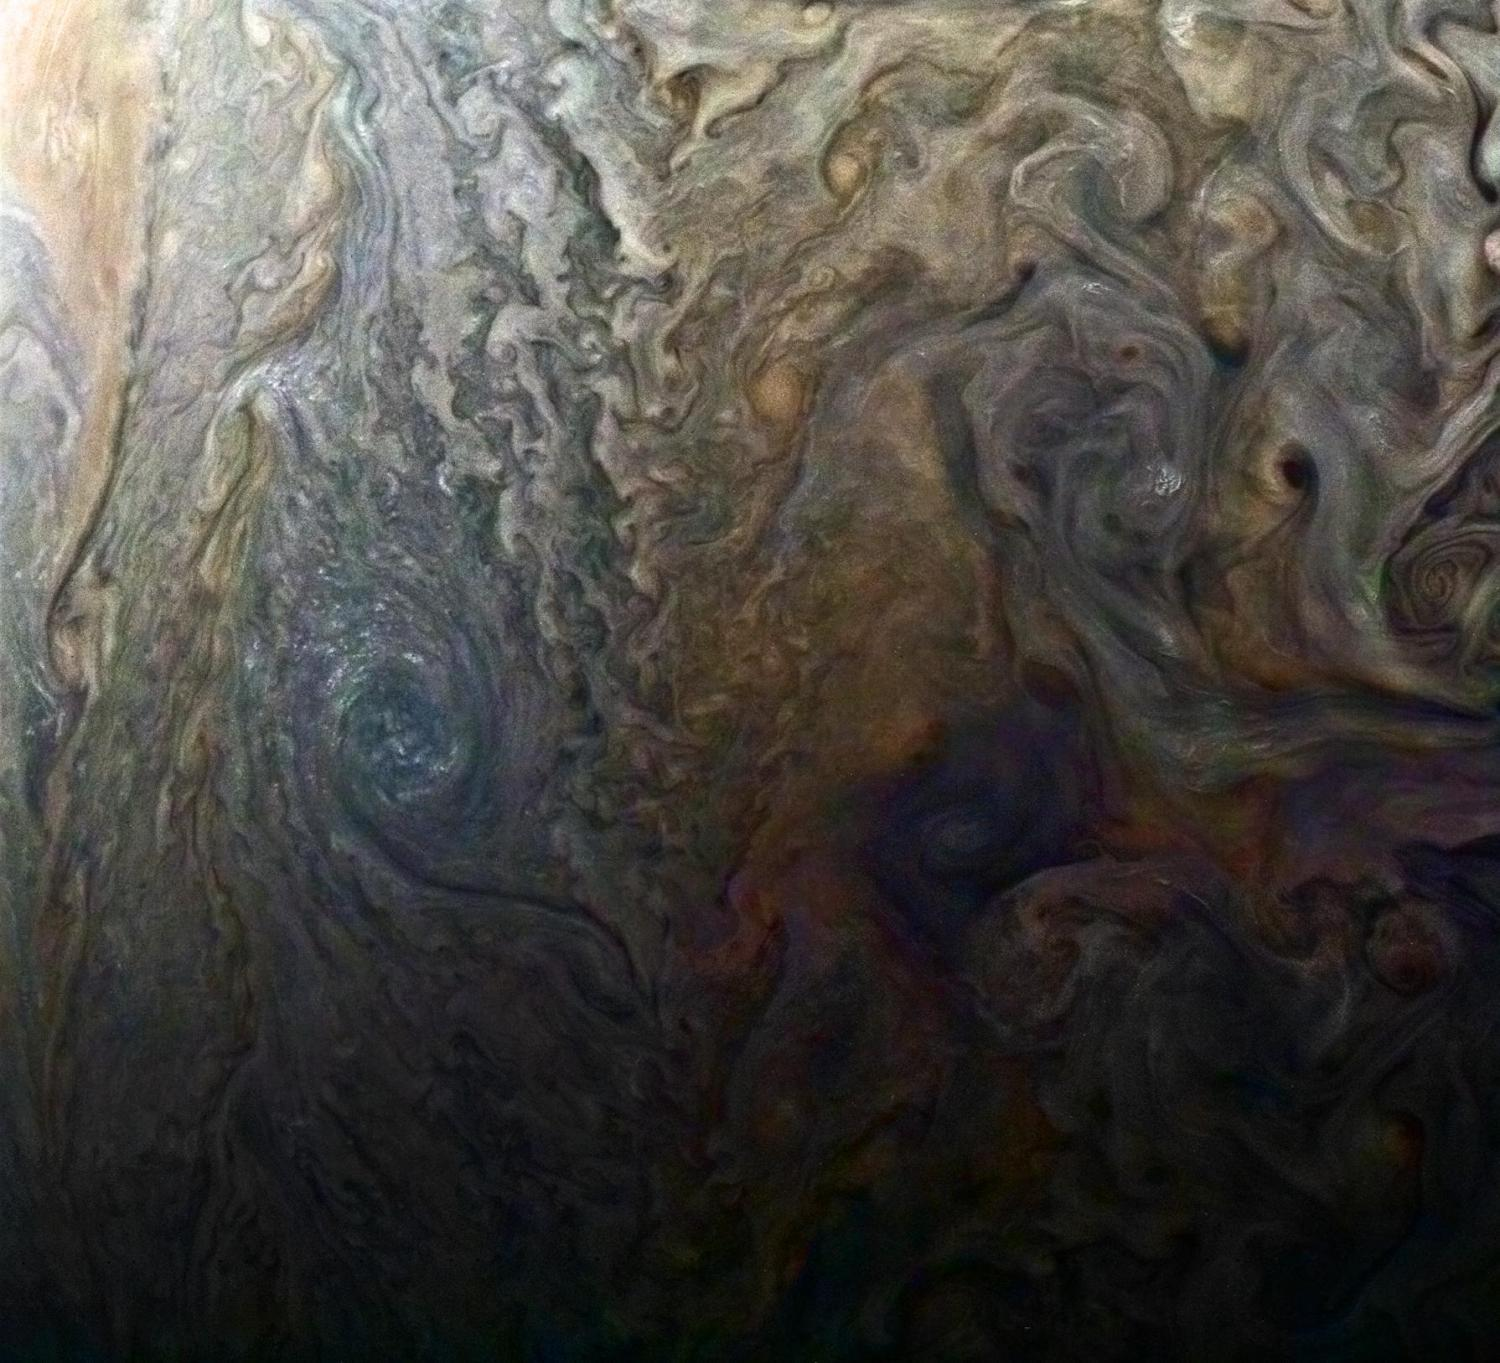 NASA's Juno spacecraft set for fifth Jupiter flyby